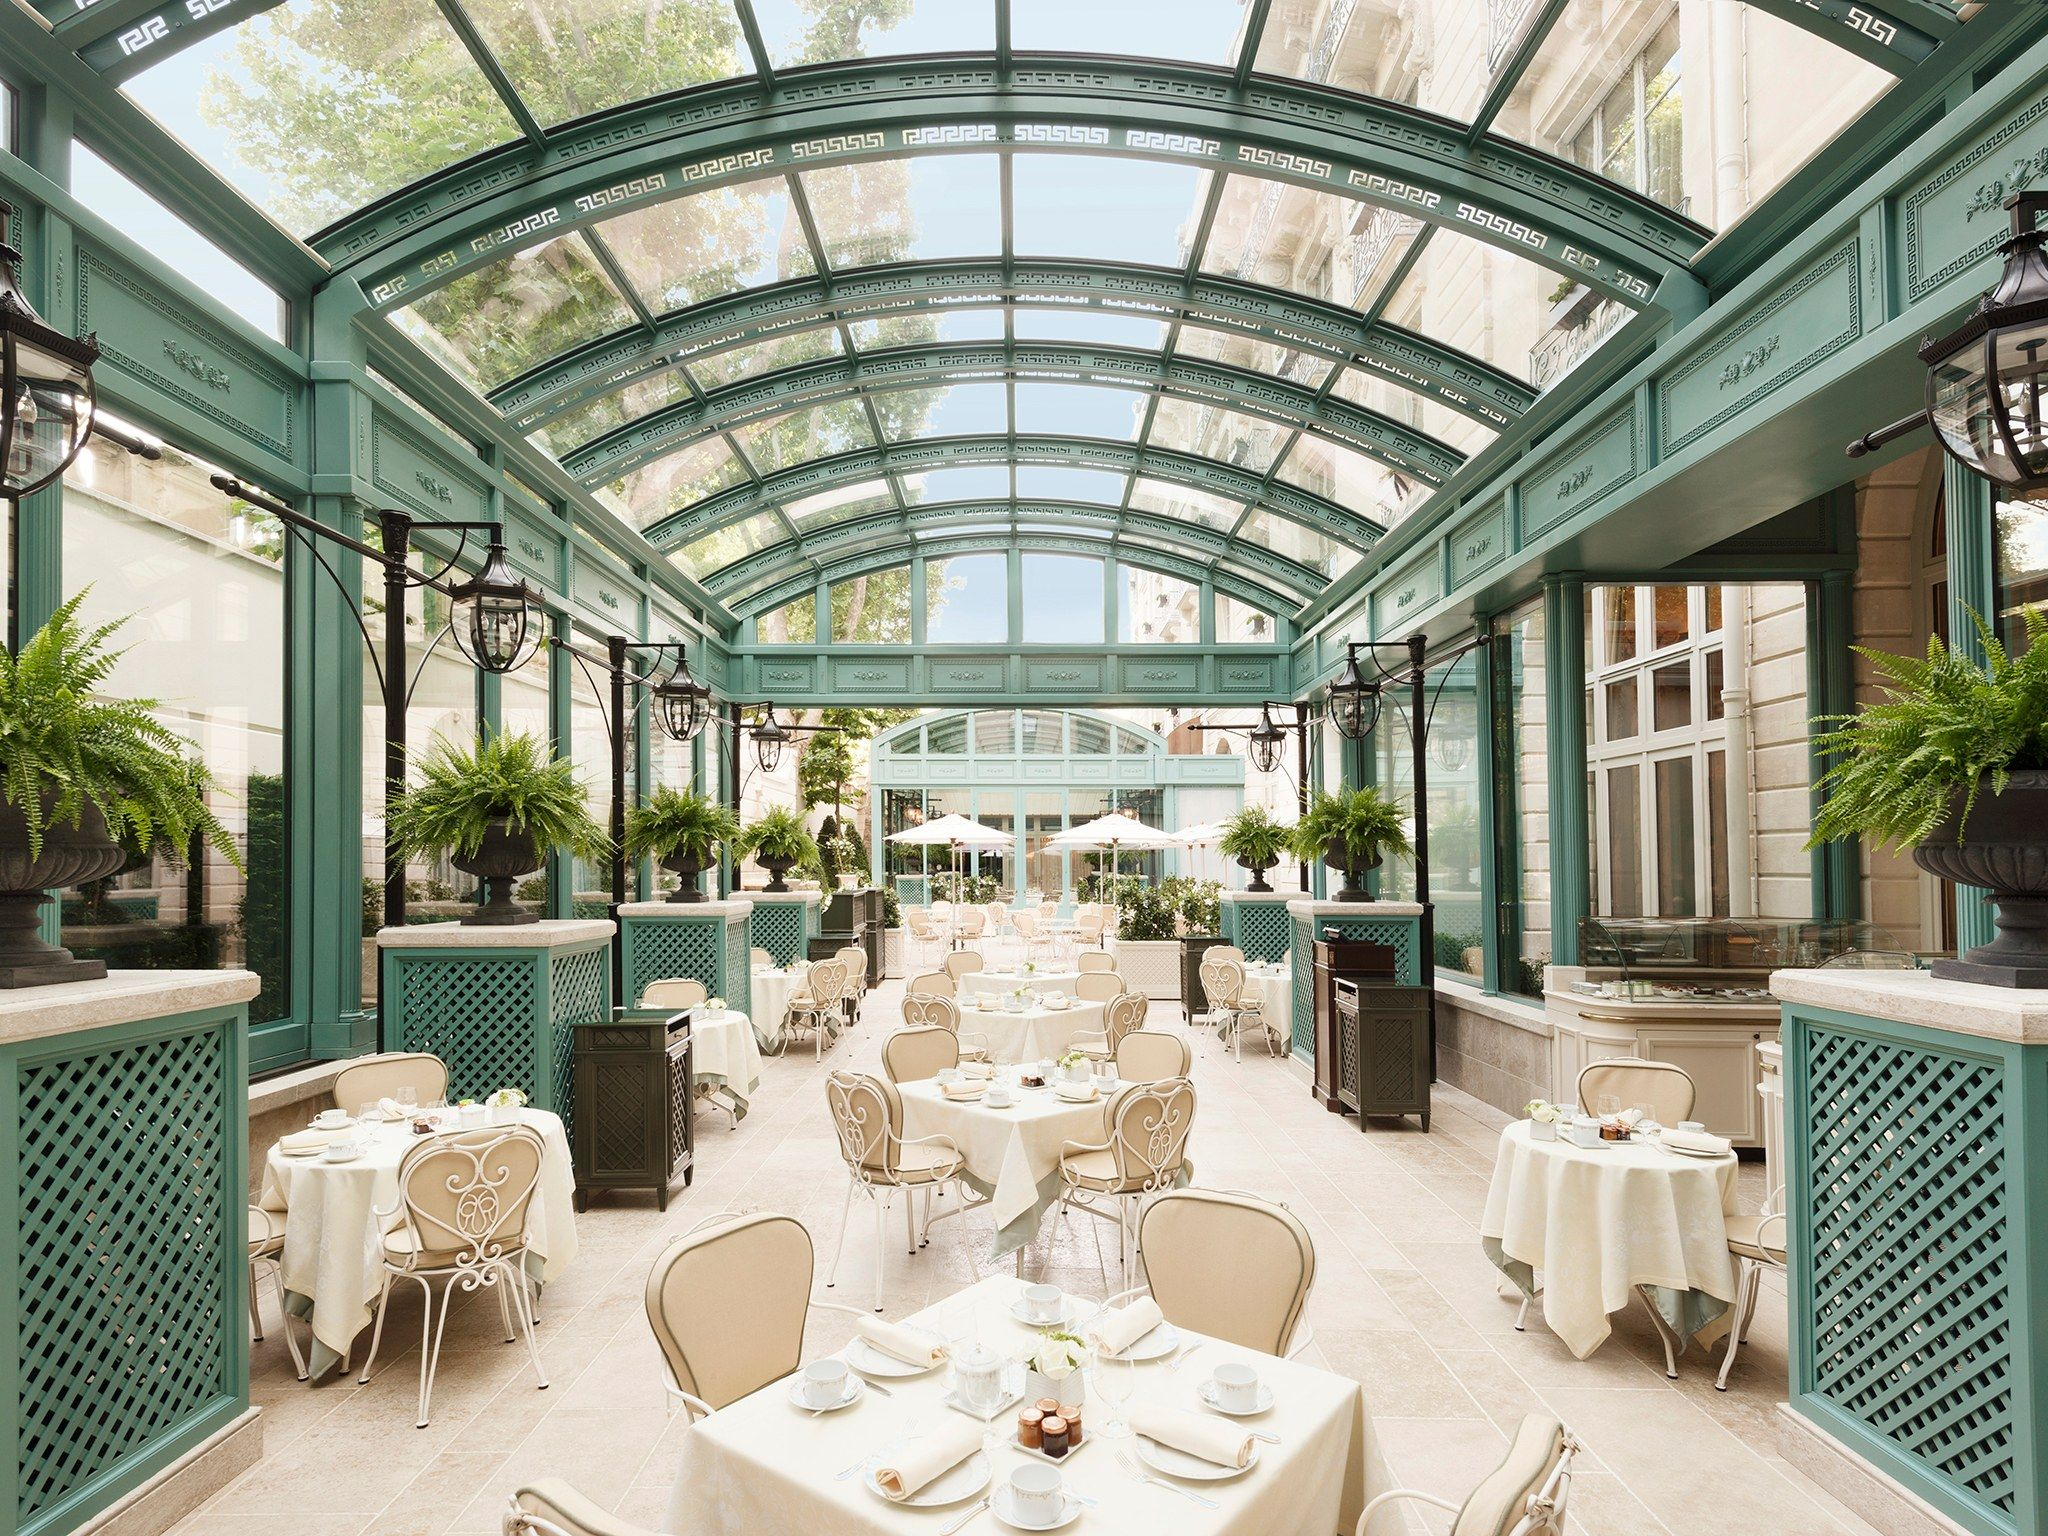 The 25 Best Hotels In Paris The Ritz Paris Luxury Restaurant